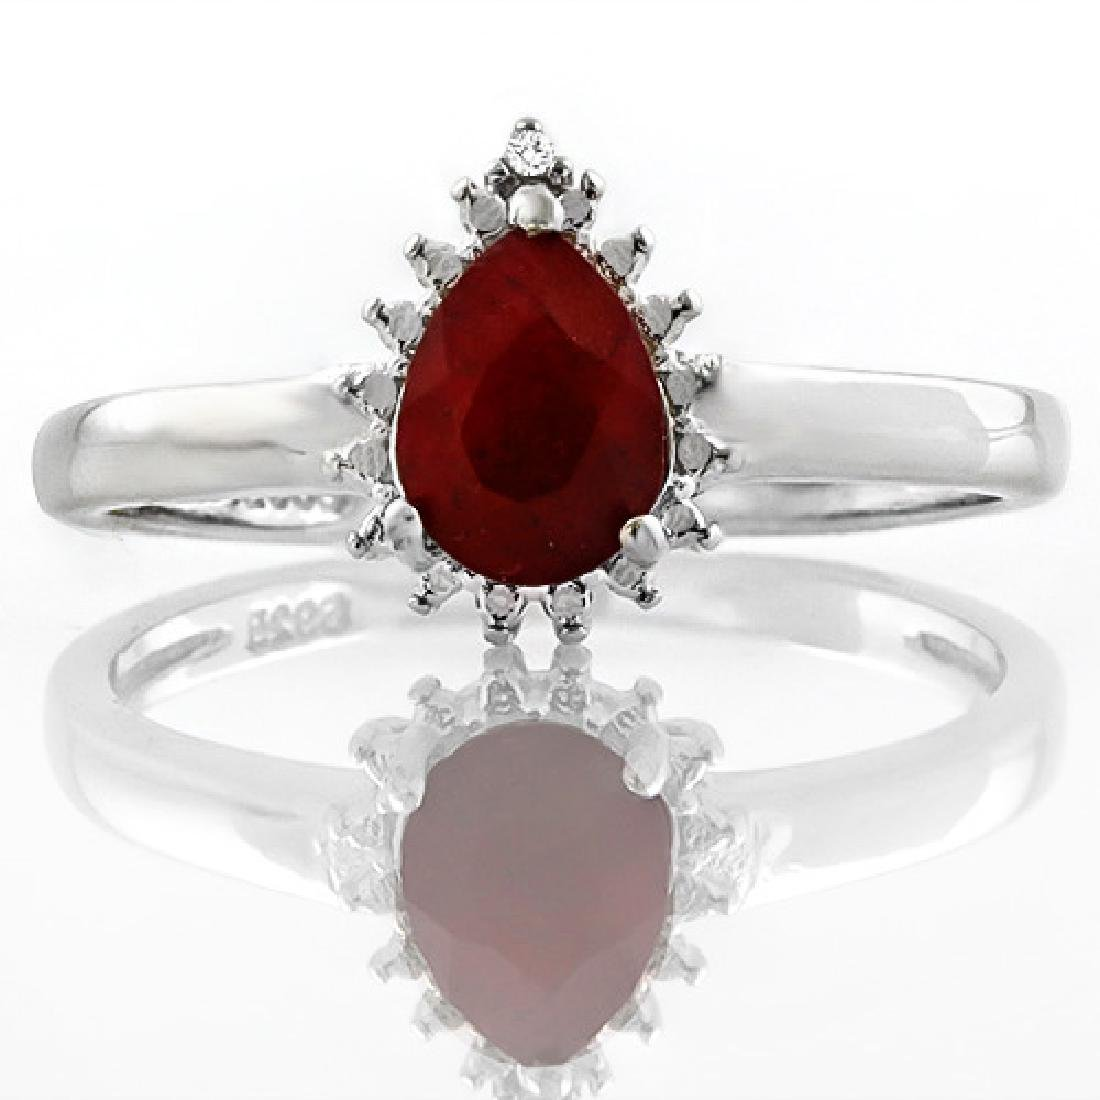 3/4 CARAT ENHANCED GENUINE RUBY & DIAMOND 925 STERLING